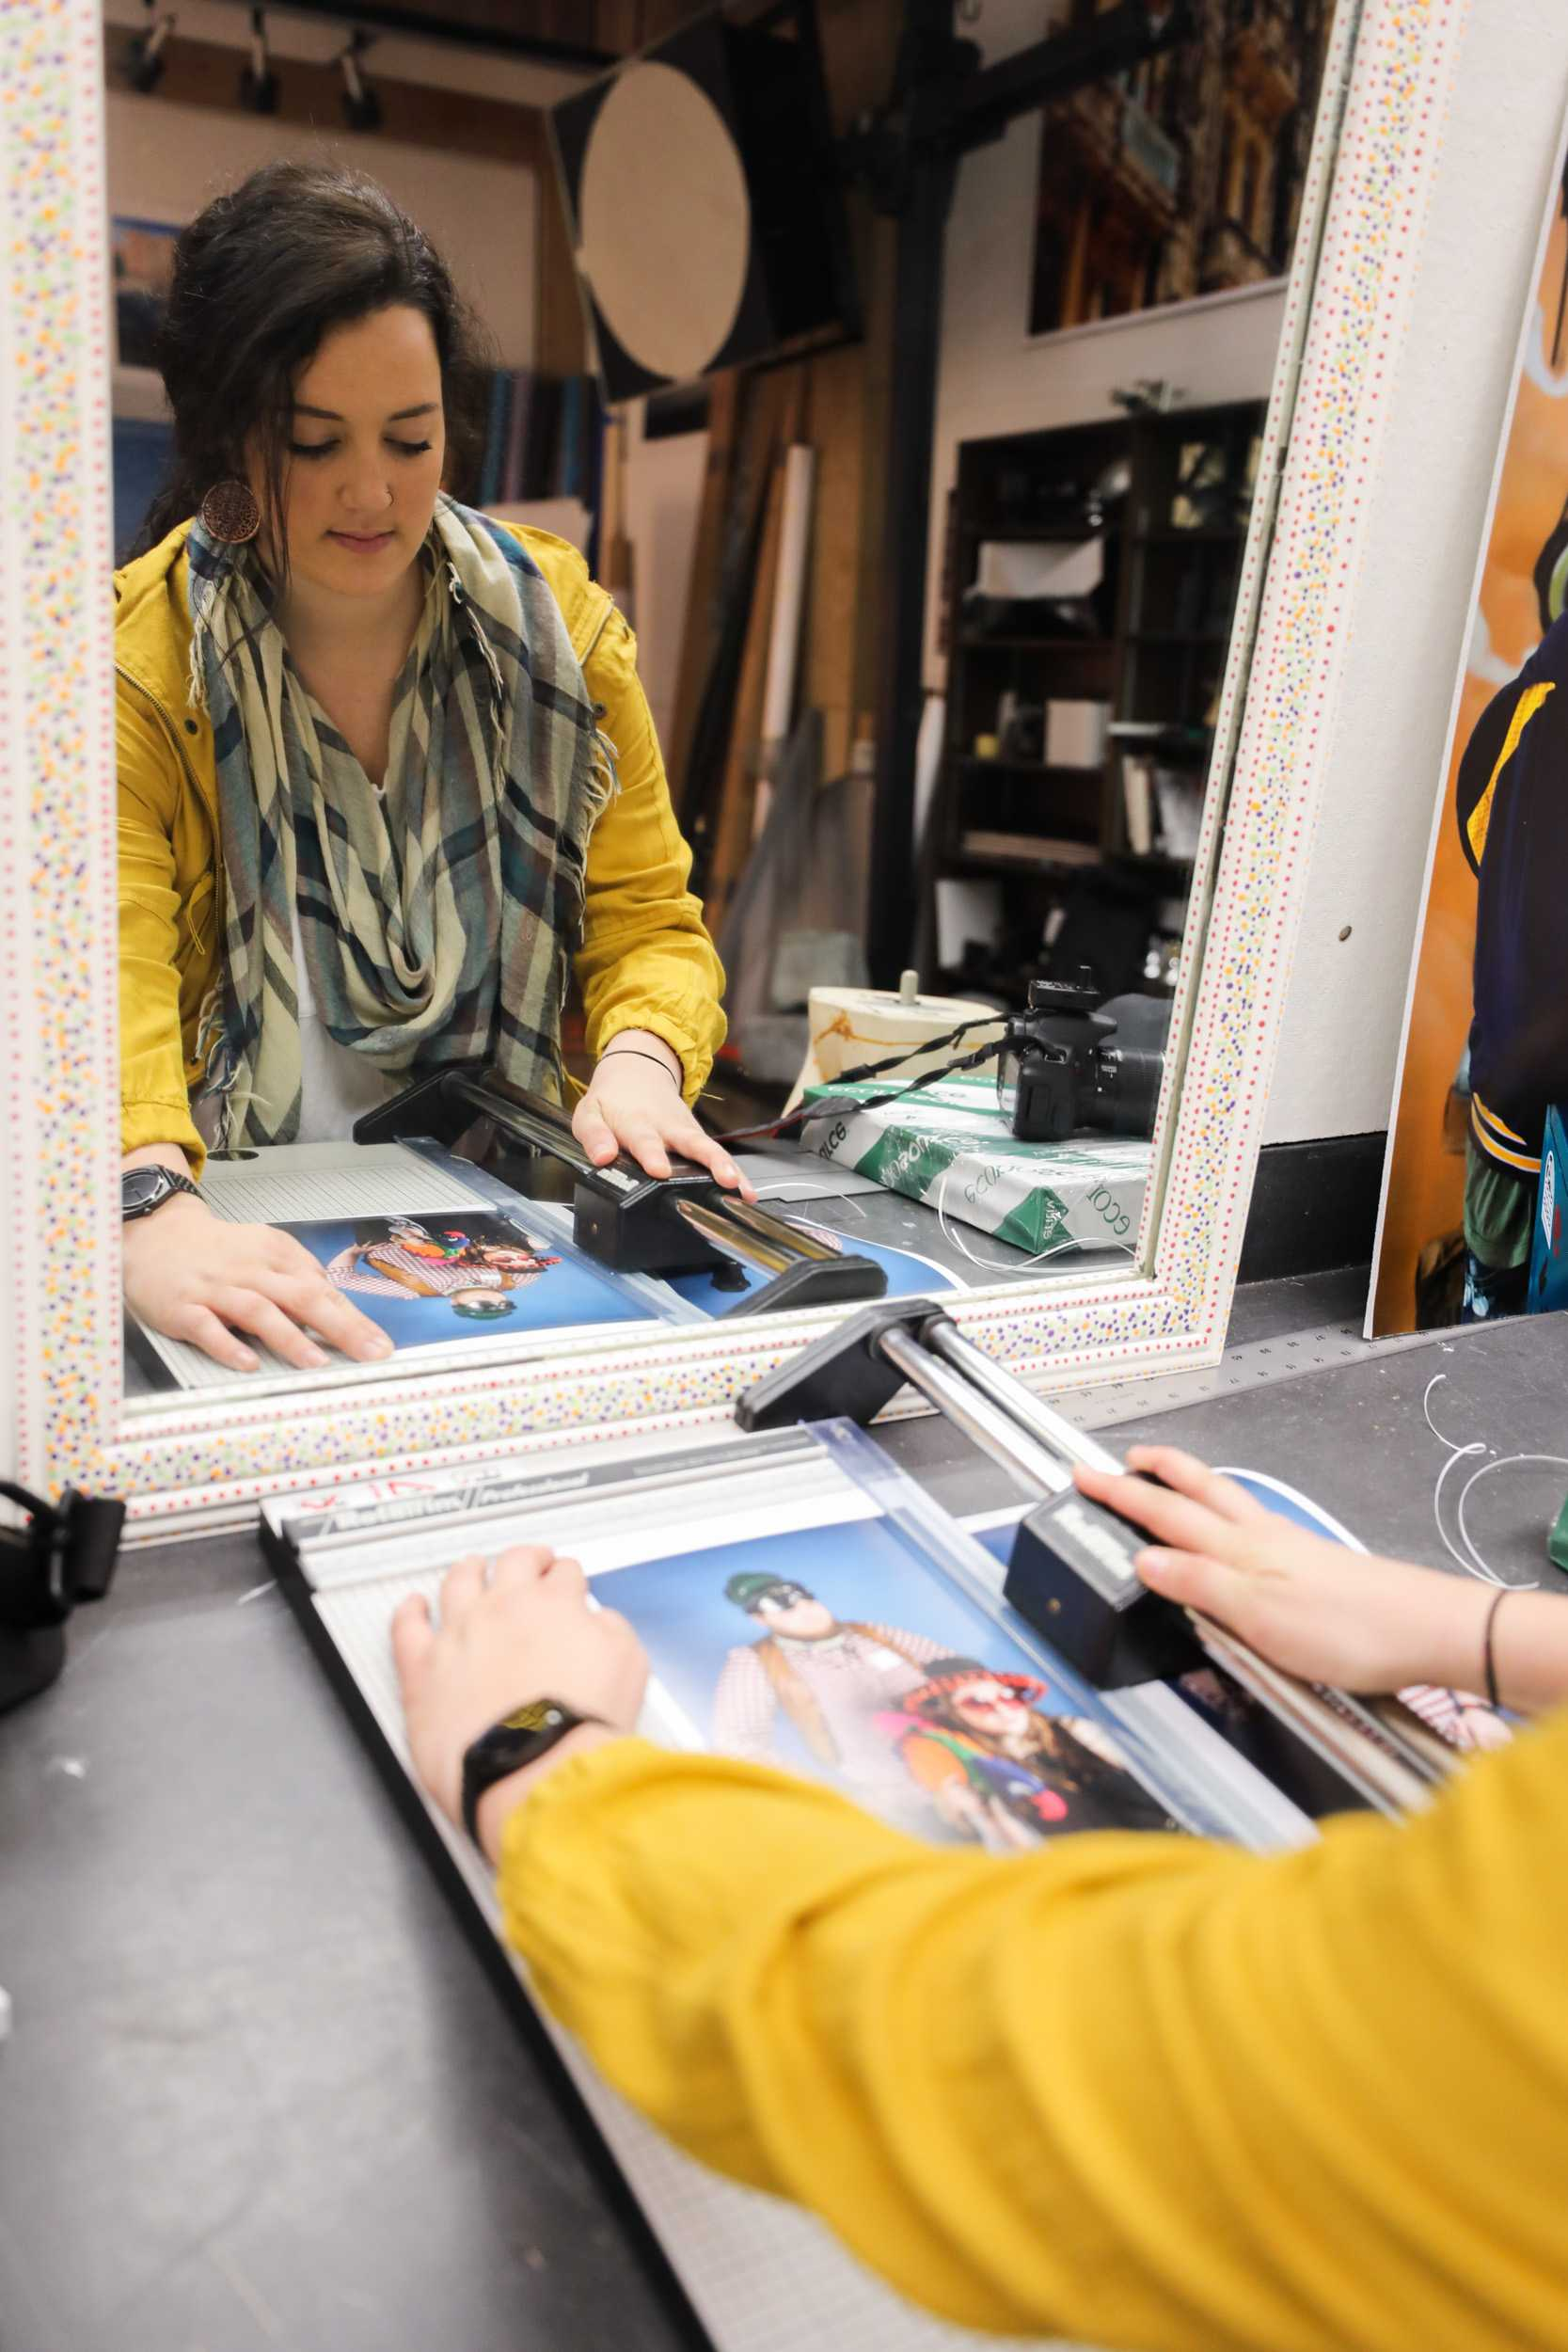 Mariah Drussel, Wichita State senior, cuts a print of a photo during the funky photo shoot in McKnight Art Center. The photo shoot was part of the ADCI open house held on Saturday. (Feb. 18, 2017)